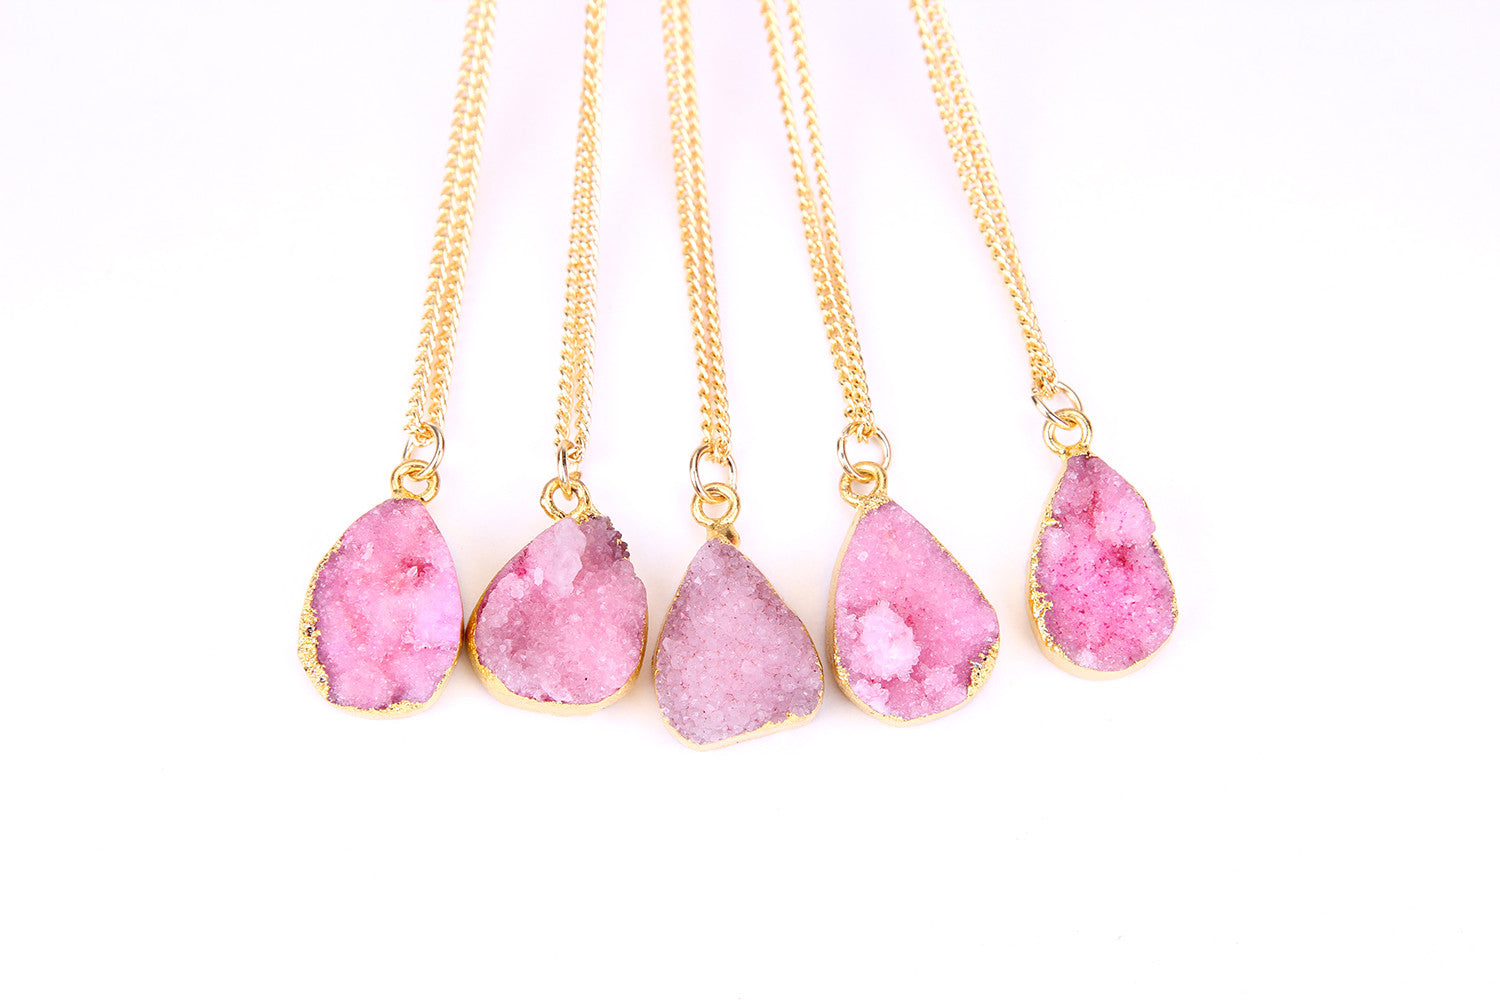 Pink Druzy Stone Necklace - Florence Scovel - 2